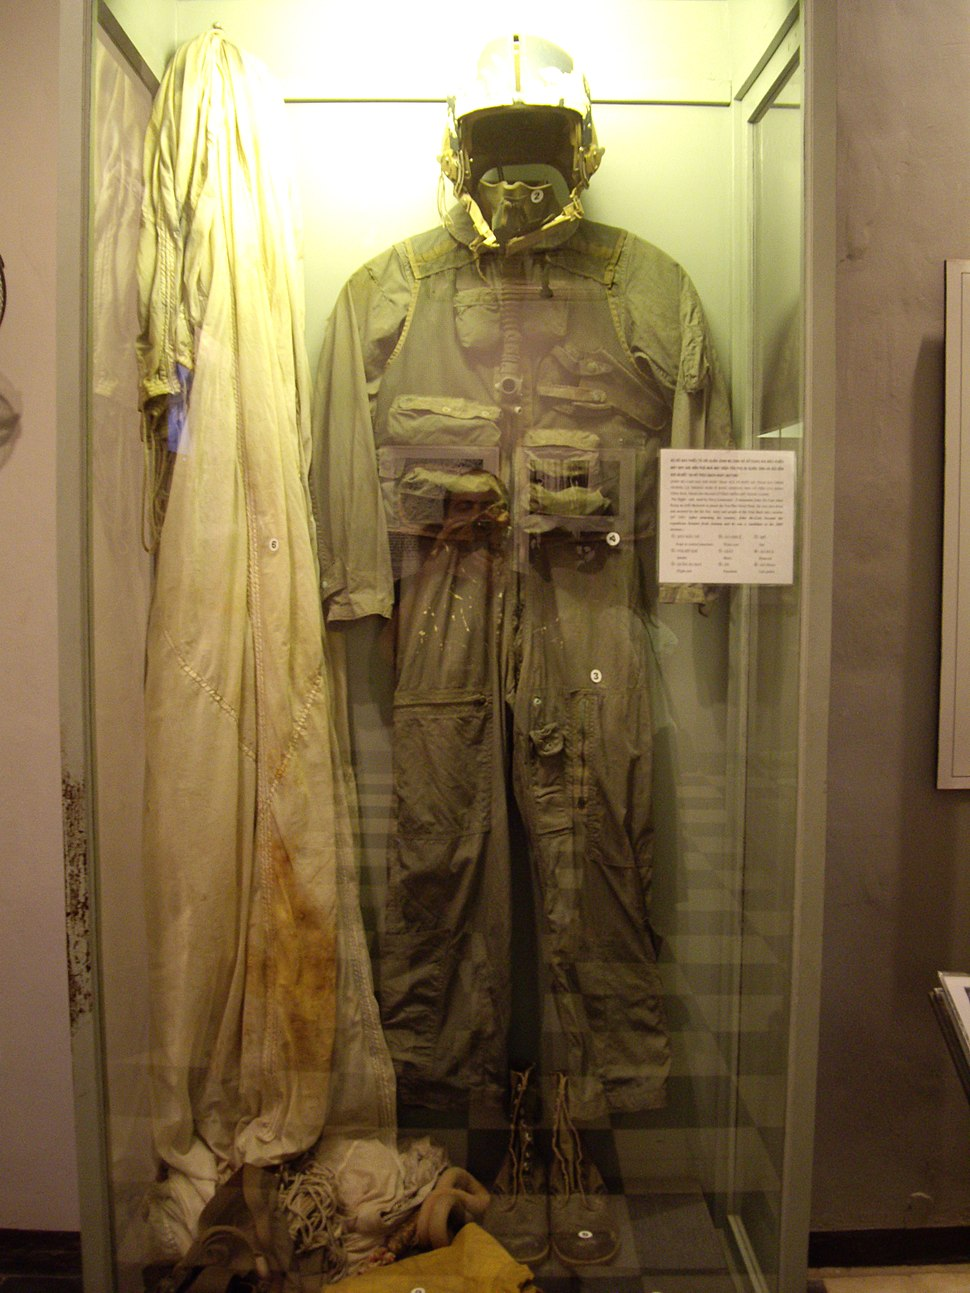 flight suit hanging in a display case